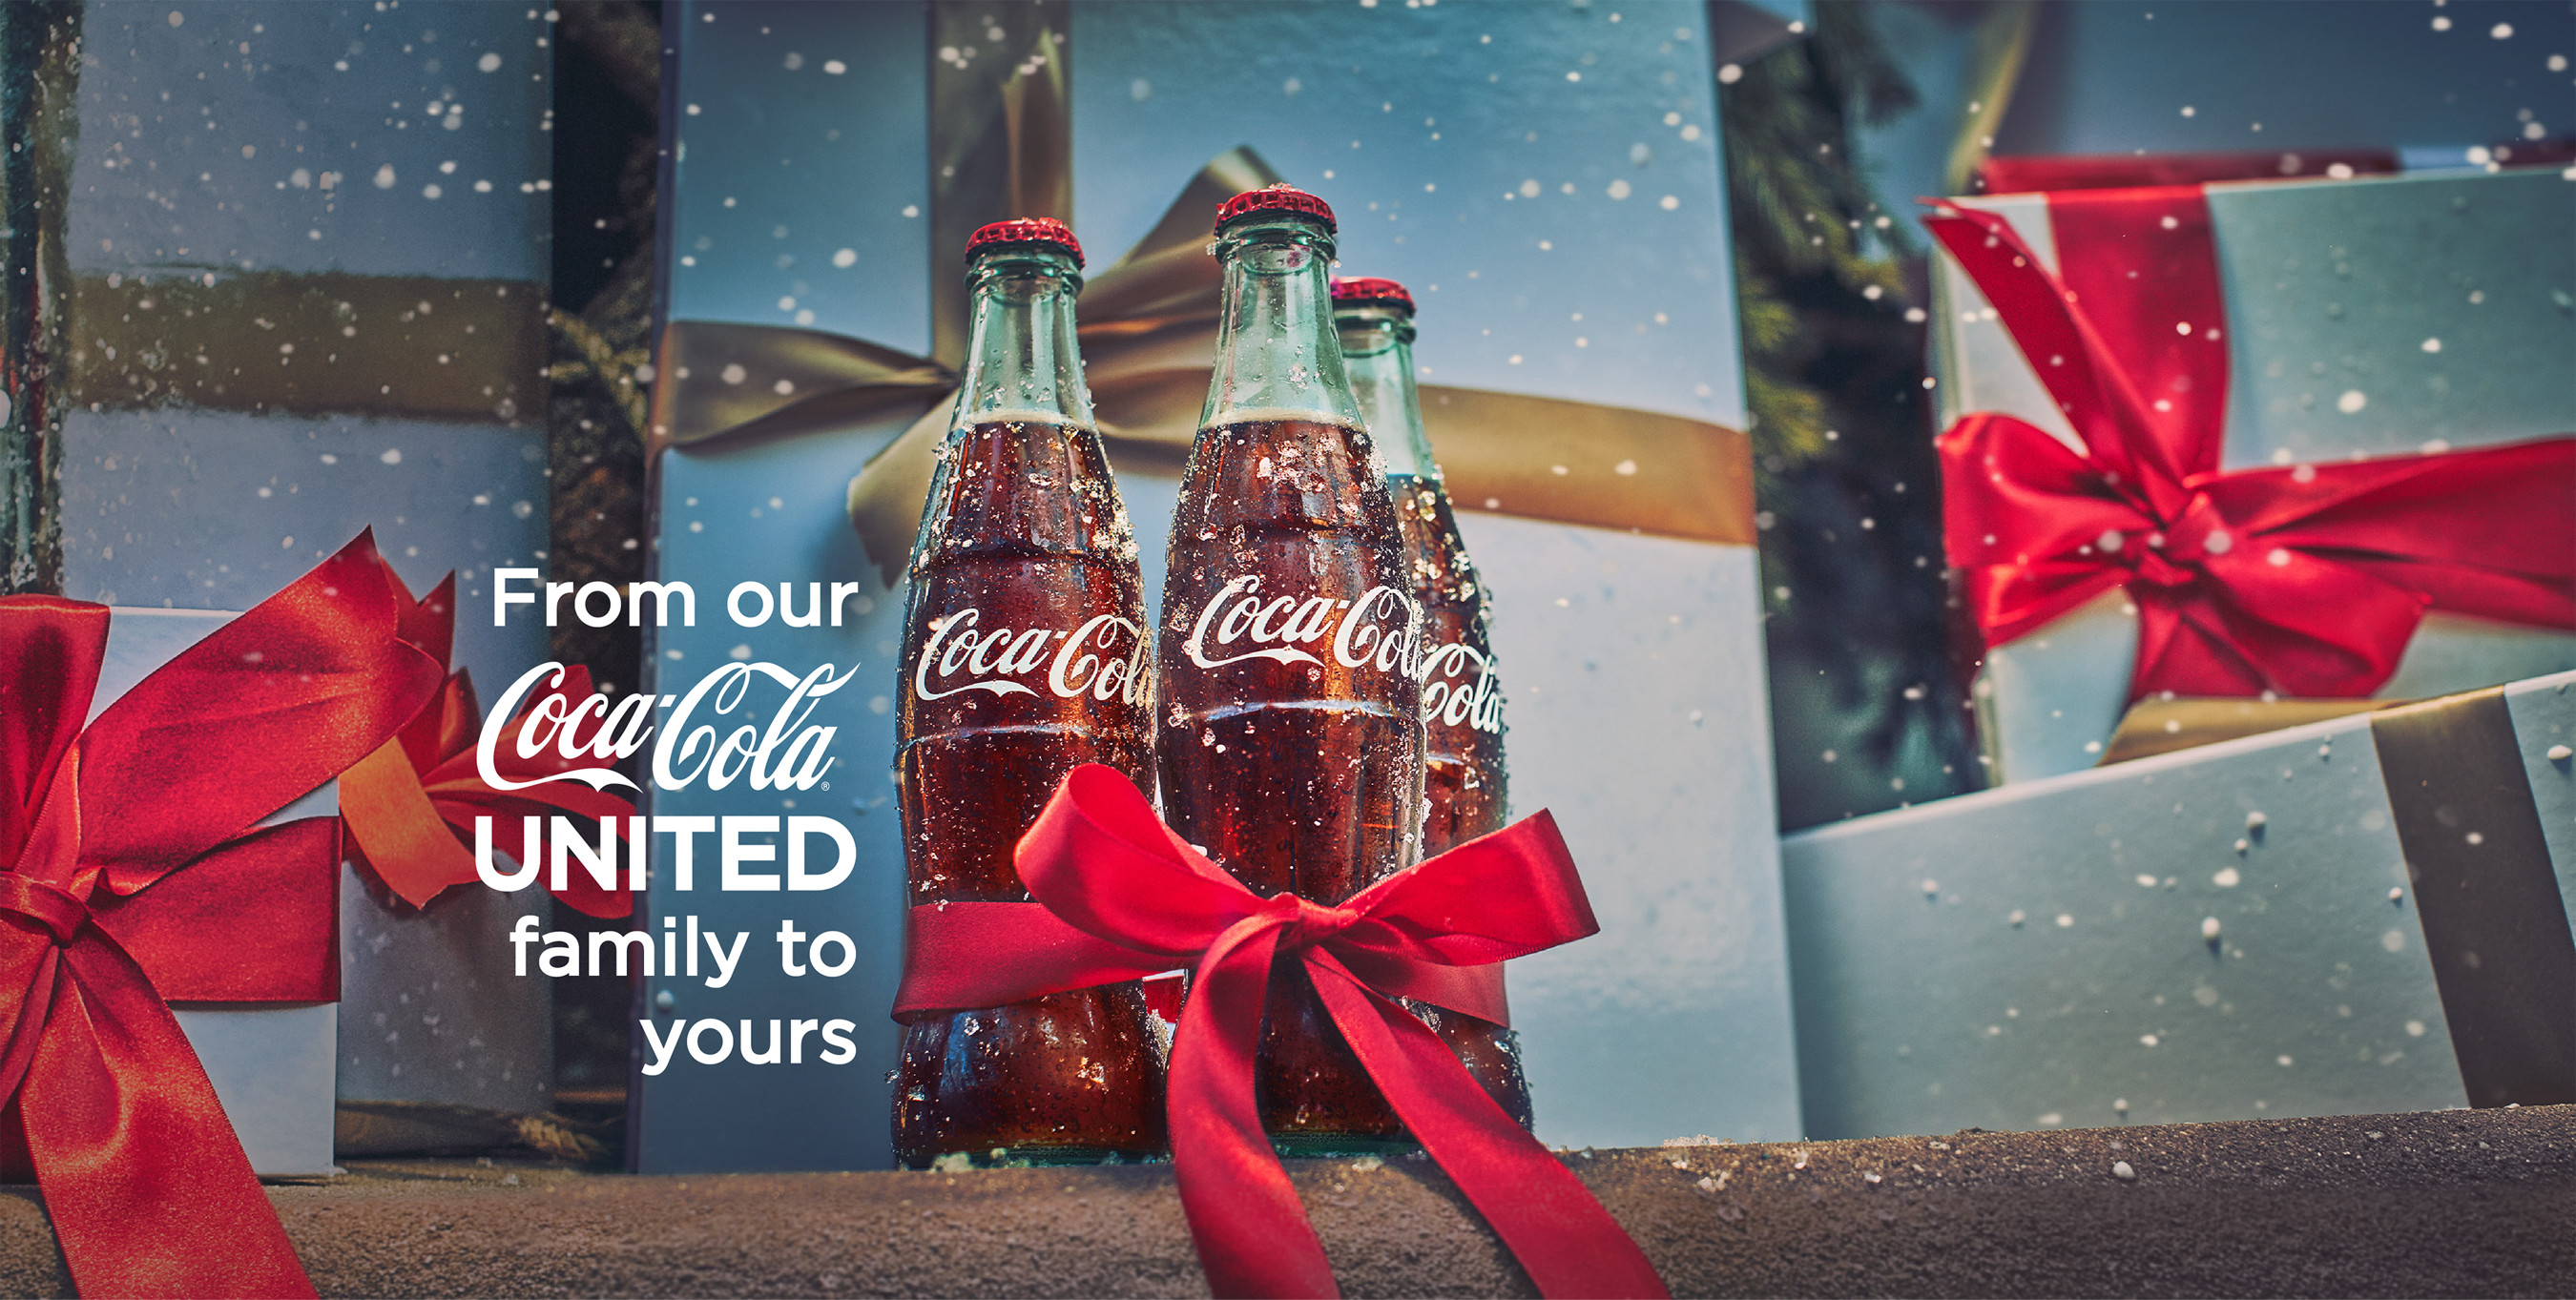 2016-holiday-giving-coca-cola-united-family-